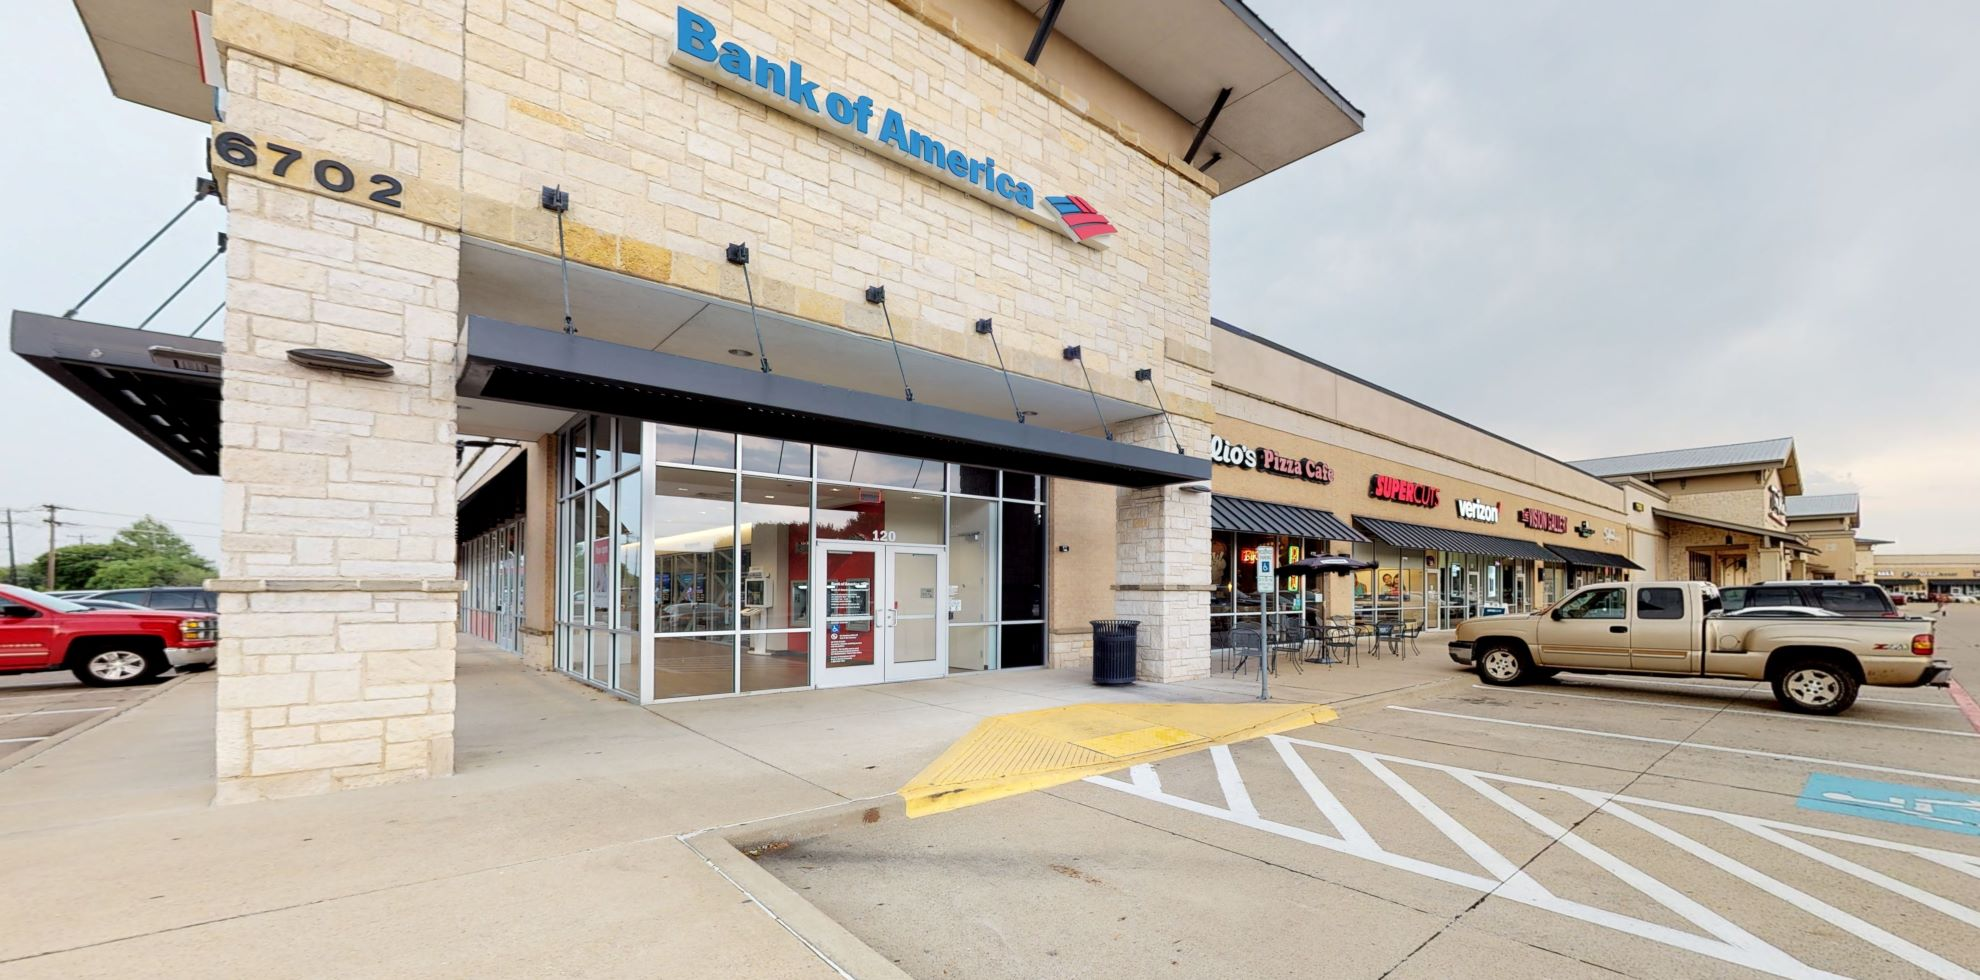 Bank of America Advanced Center with walk-up ATM | 6702 Dalrock Rd, Rowlett, TX 75089